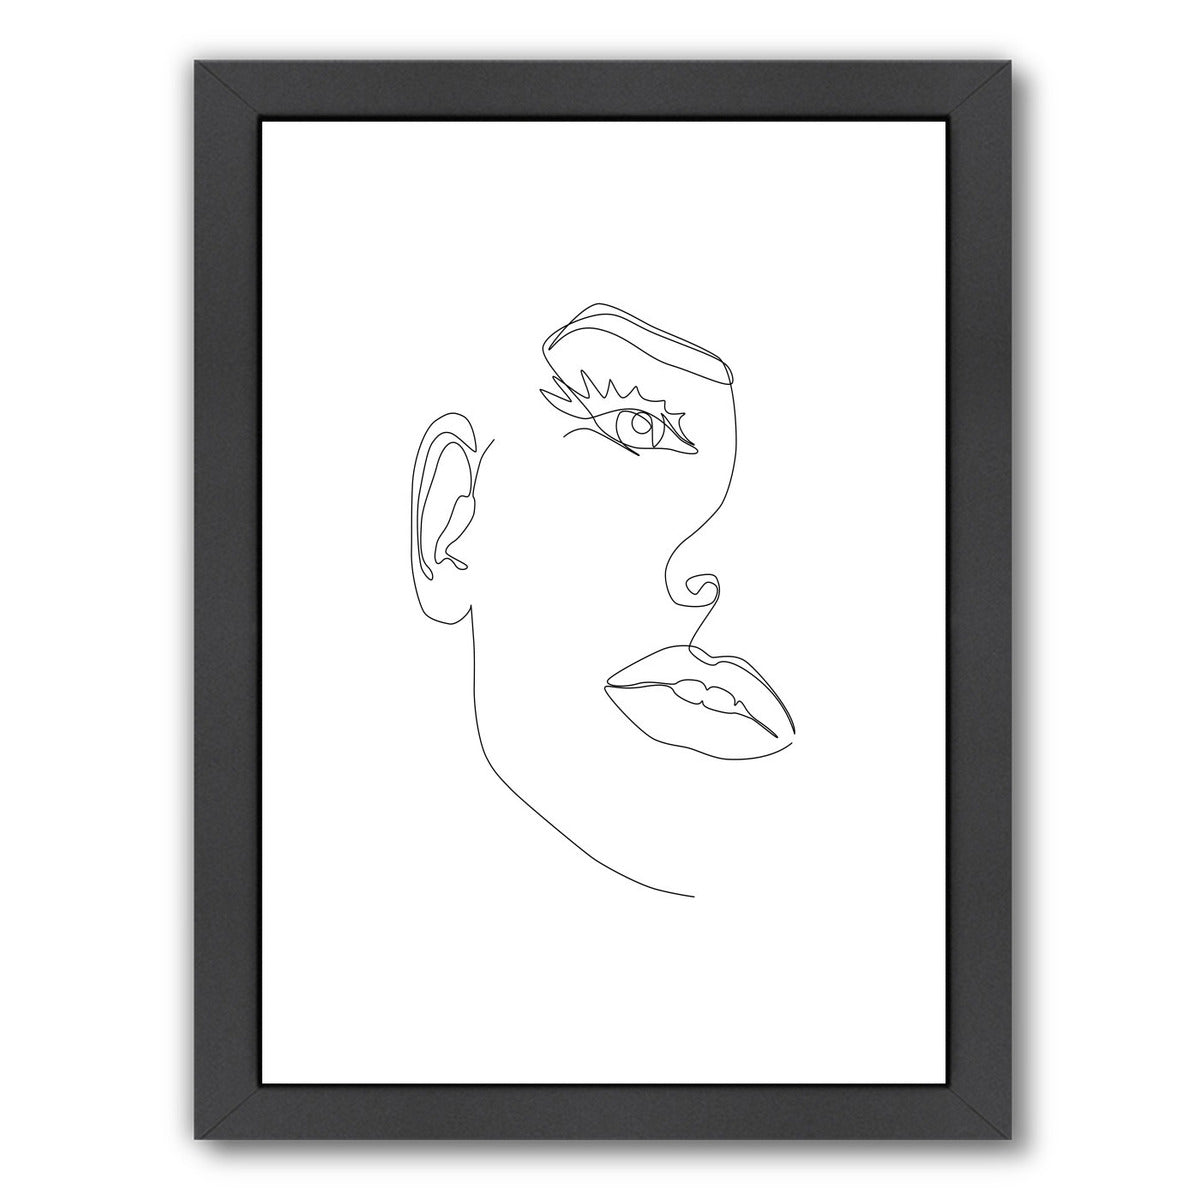 Fine Line Beauty by Explicit Design Framed Print - Wall Art - Americanflat